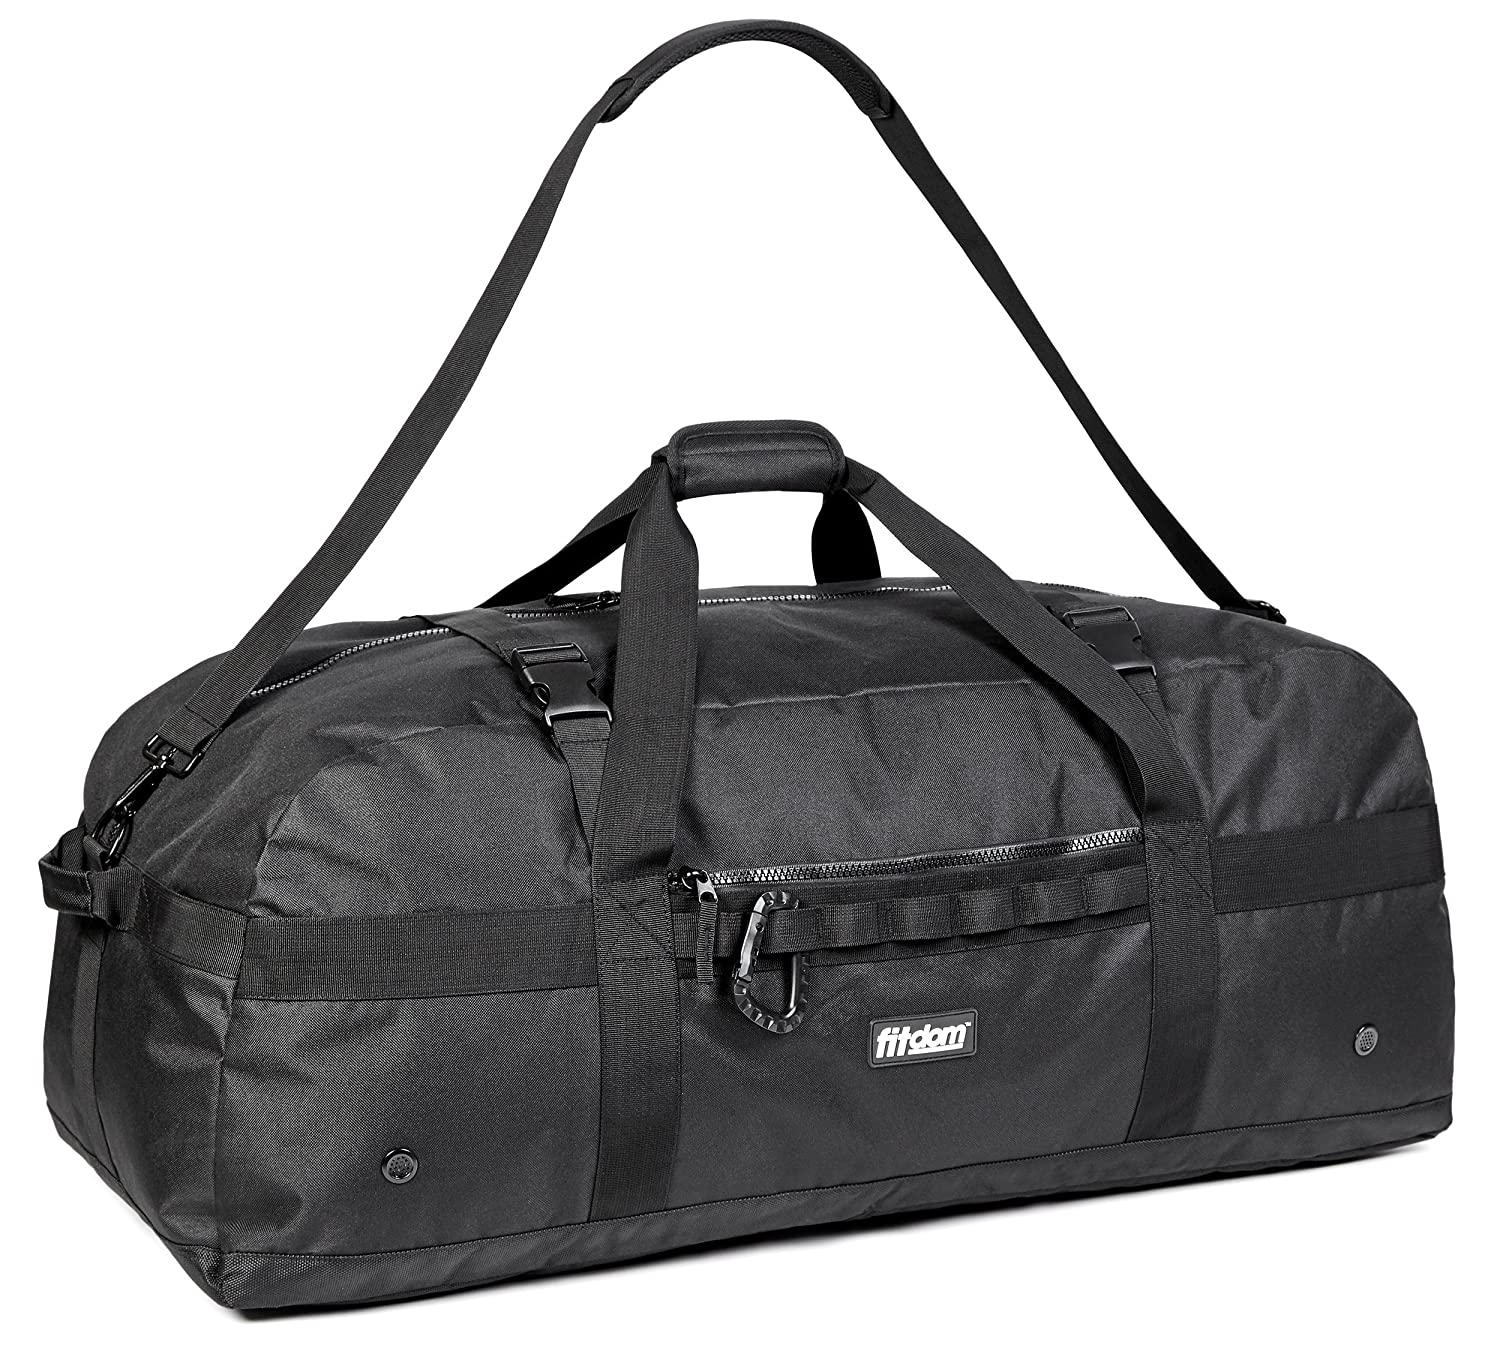 Heavy Duty Extra Large Sports Gym Equipment Travel Duffel Bag W/Adjustable Shoulder & Compression Straps. Perfect for Team Coaches, Best for Soccer, Baseball, Basketball, Hockey. Football & More Fitdom